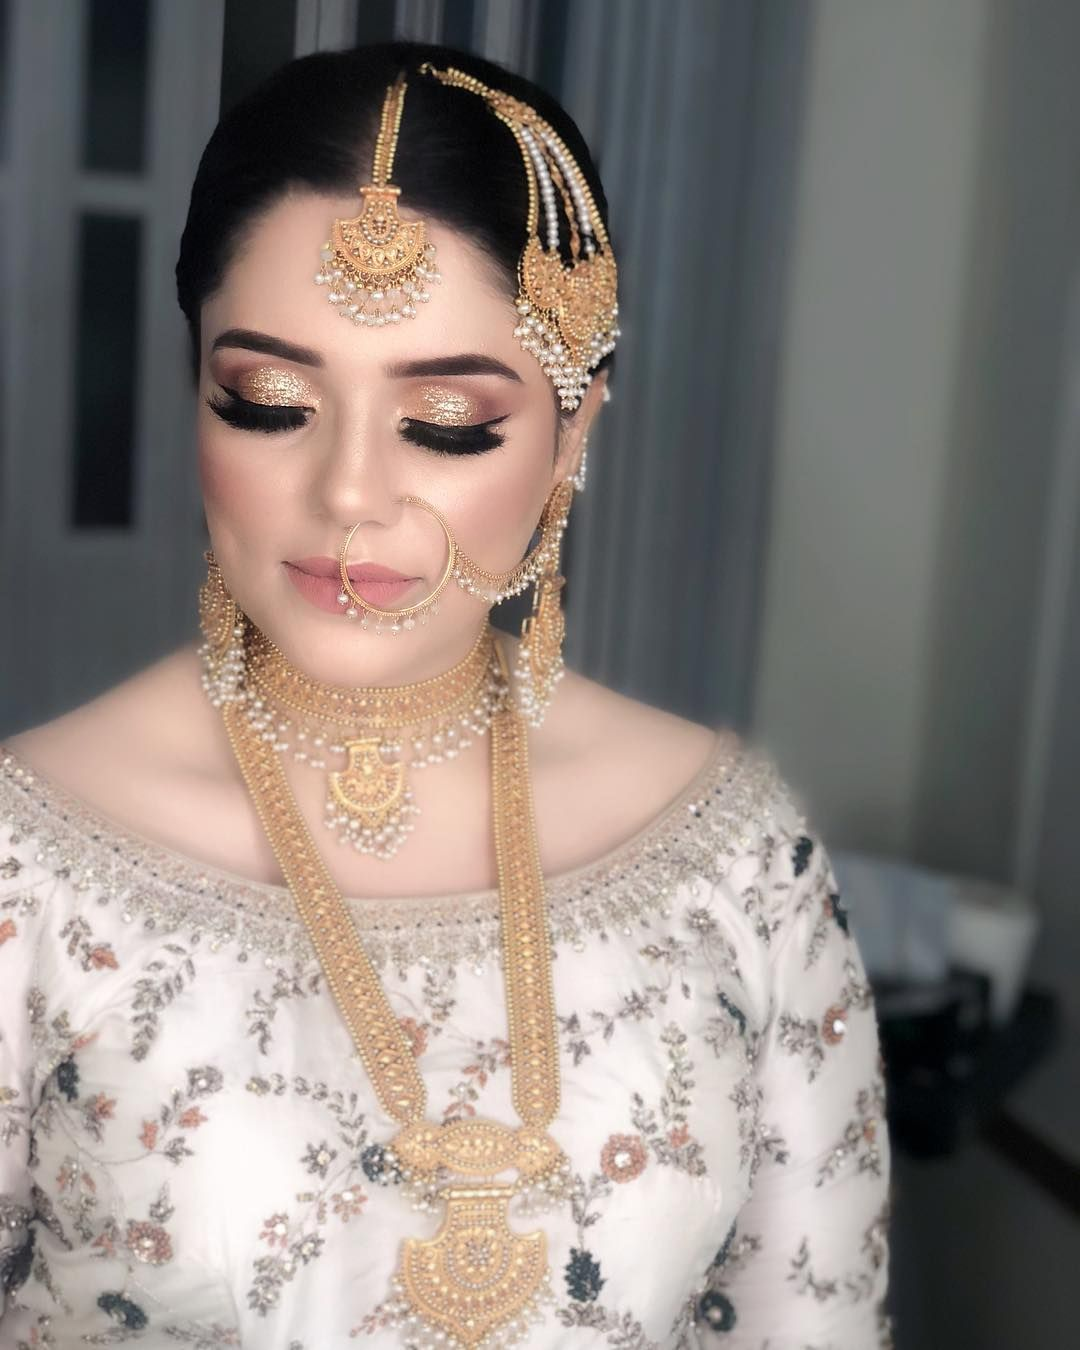 Image may contain 1 person, closeup Pakistani bridal